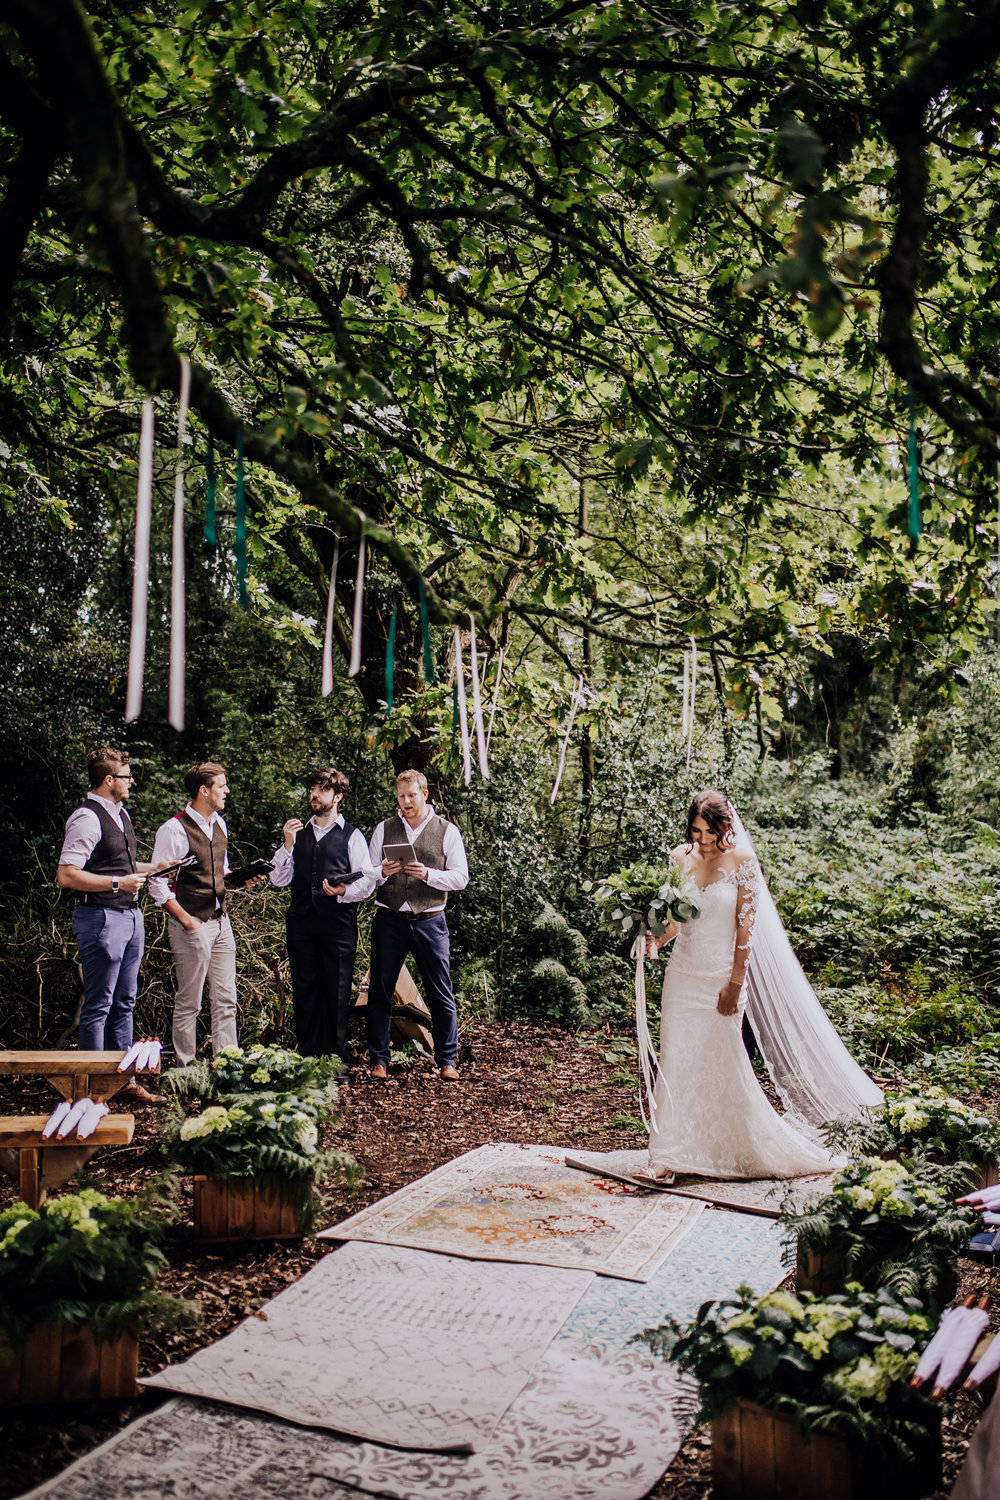 A forest wedding in the heart of cheshire